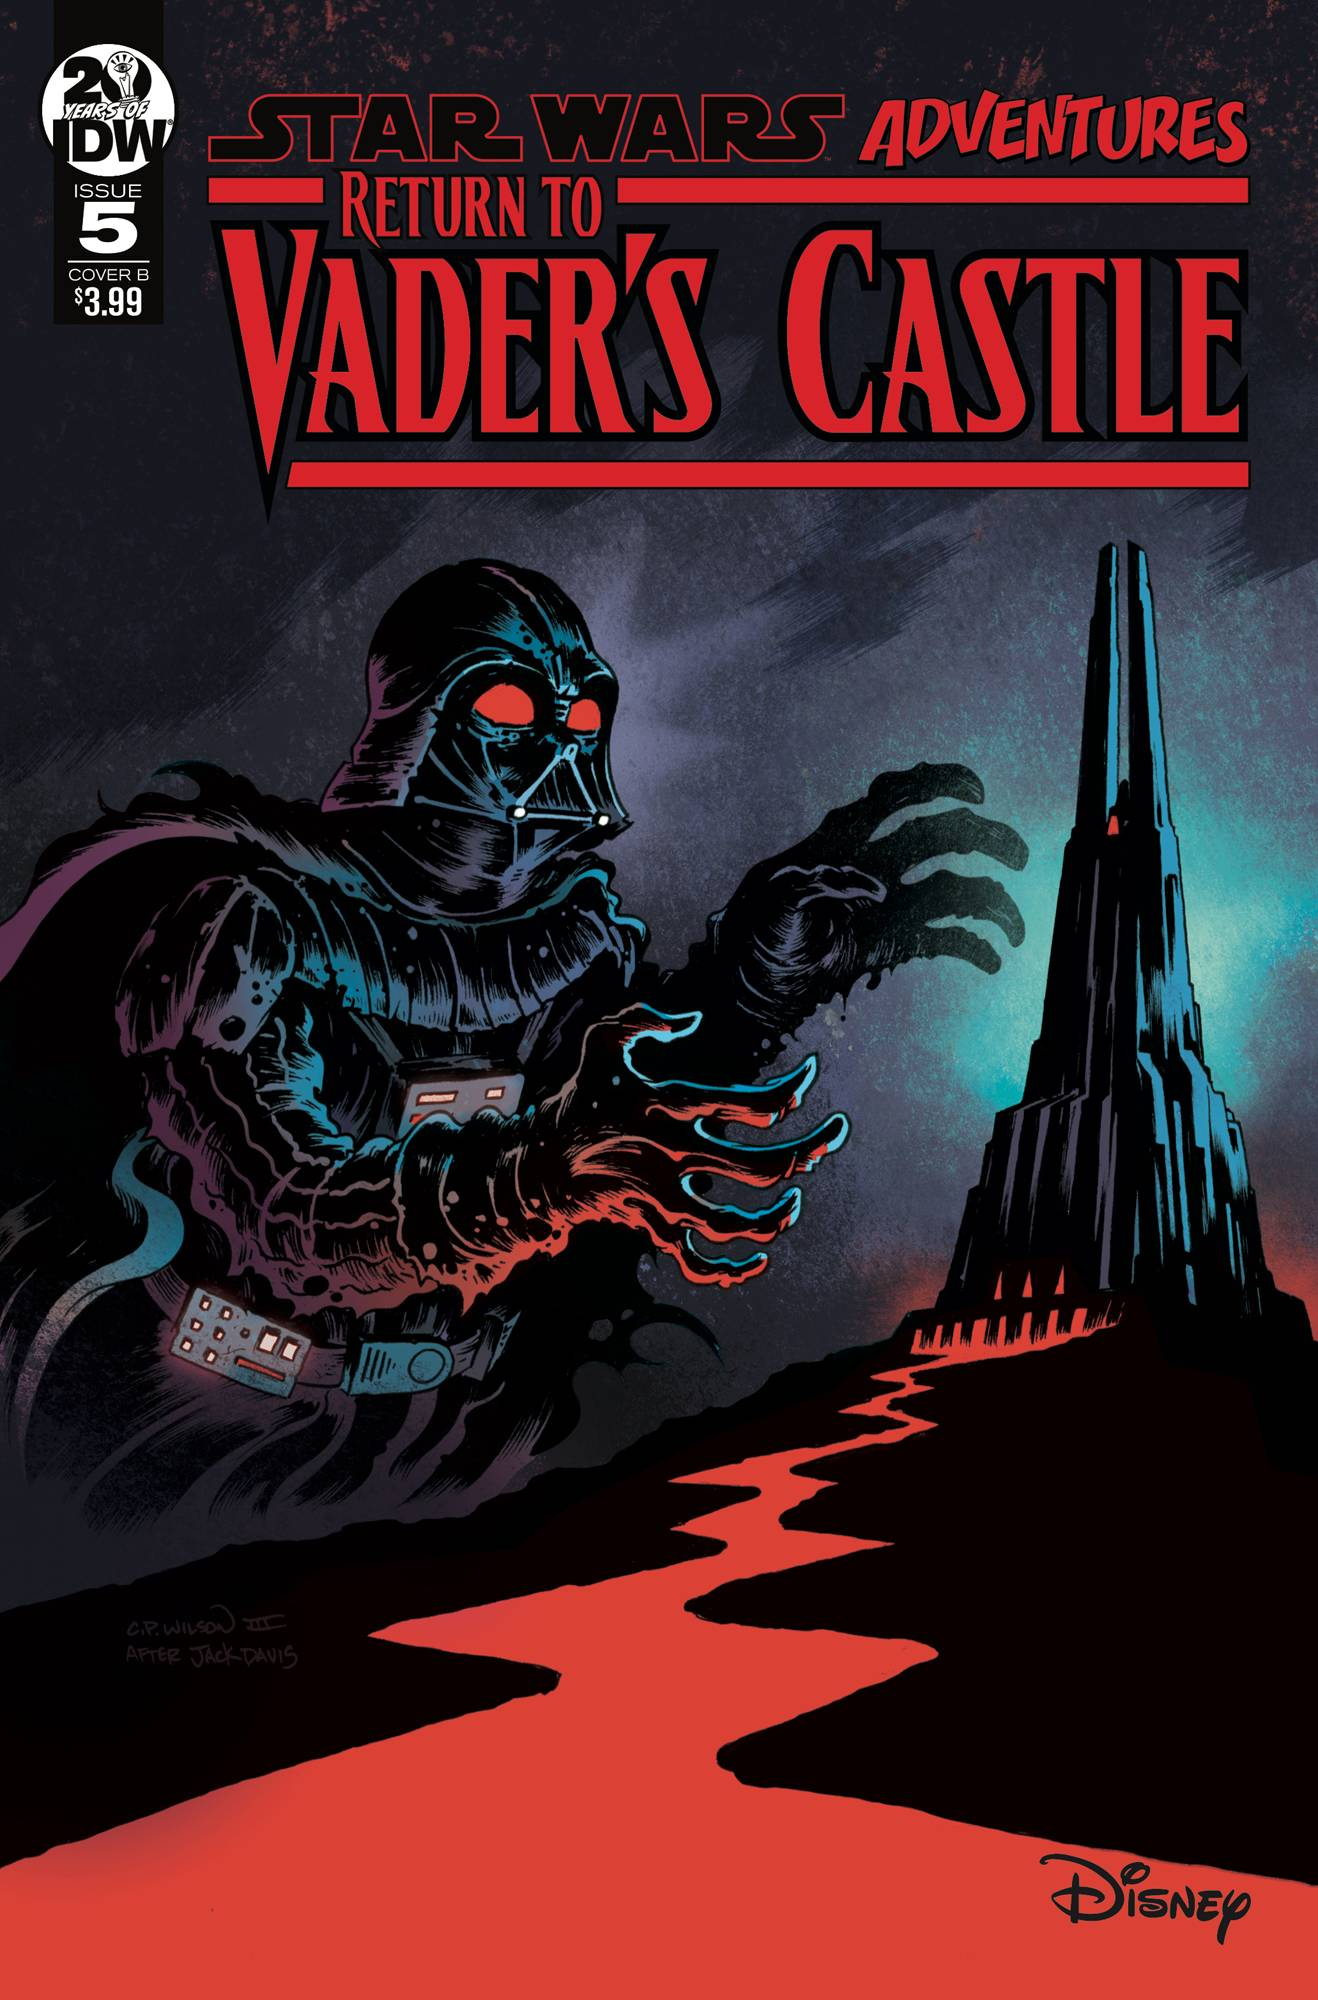 Star Wars Adventures: Return To Vader's Castle #5 (2019)